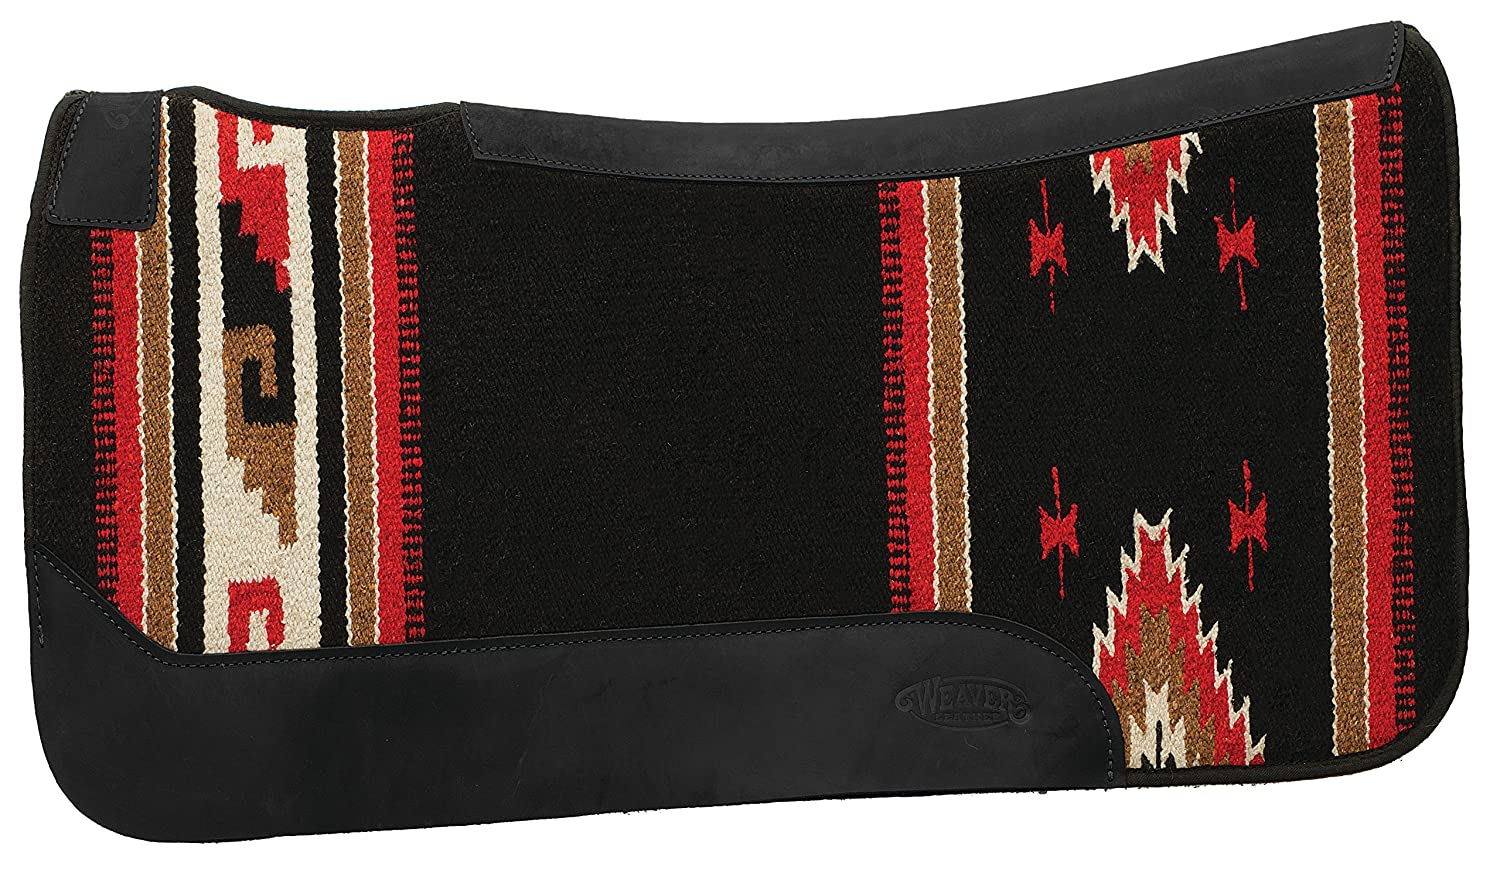 Black Pattern Weaver Leather Contoured Single Weave Felt Pad